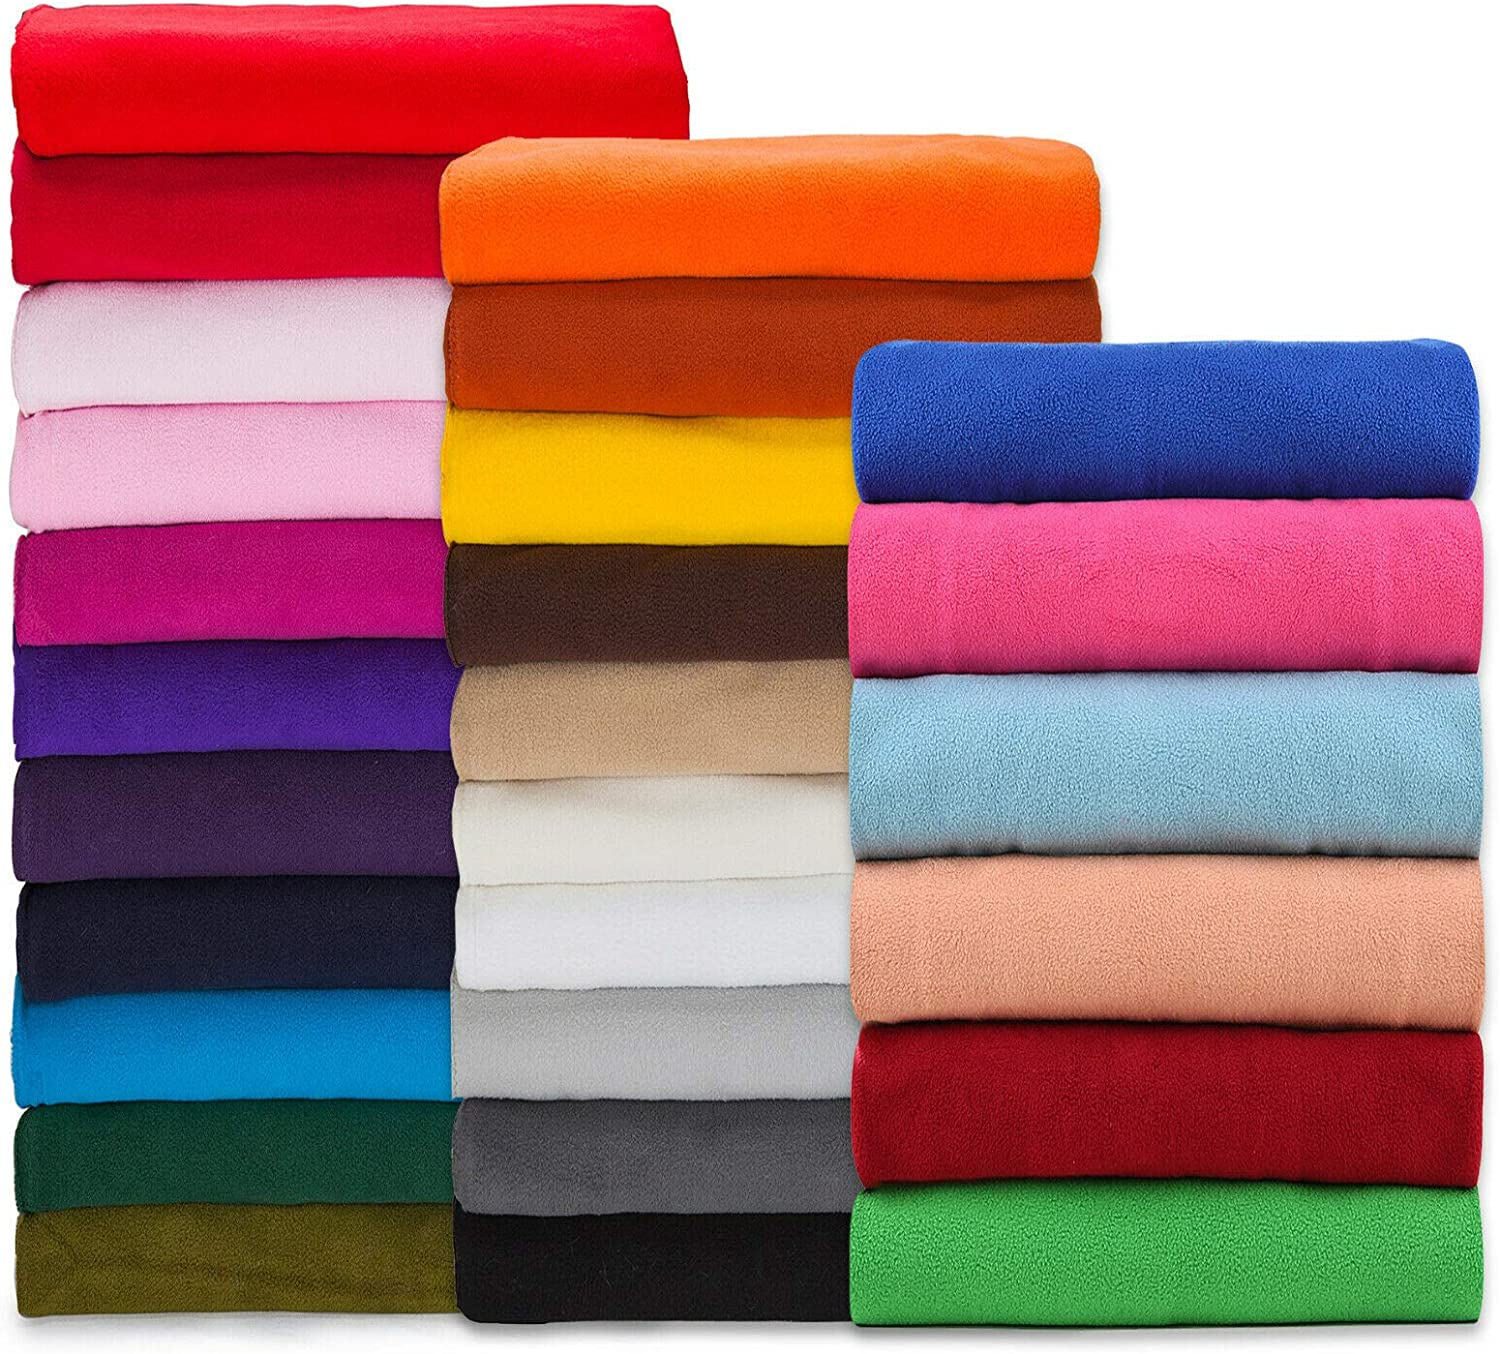 Polar Fleece Fabric,Quality Material,International Approved Test Report for Anti Pill Finish. 27 Fashion Colors,Medium 320Grams Weight. PlushPile,Garments,Home Décor,Crafts (Purple ½ M)